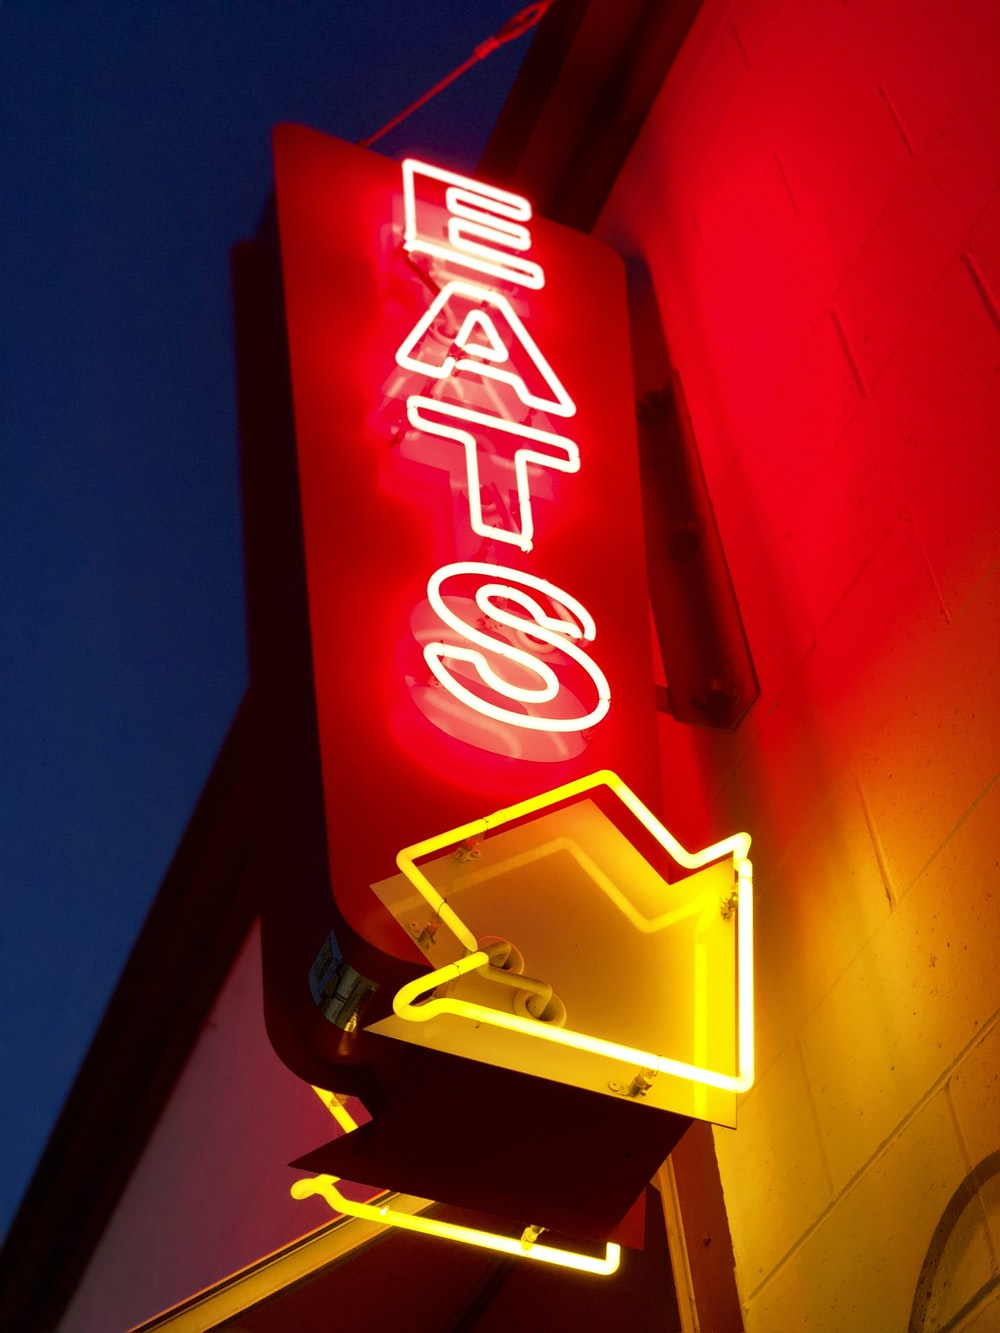 red and yellow eats LED signage turned on